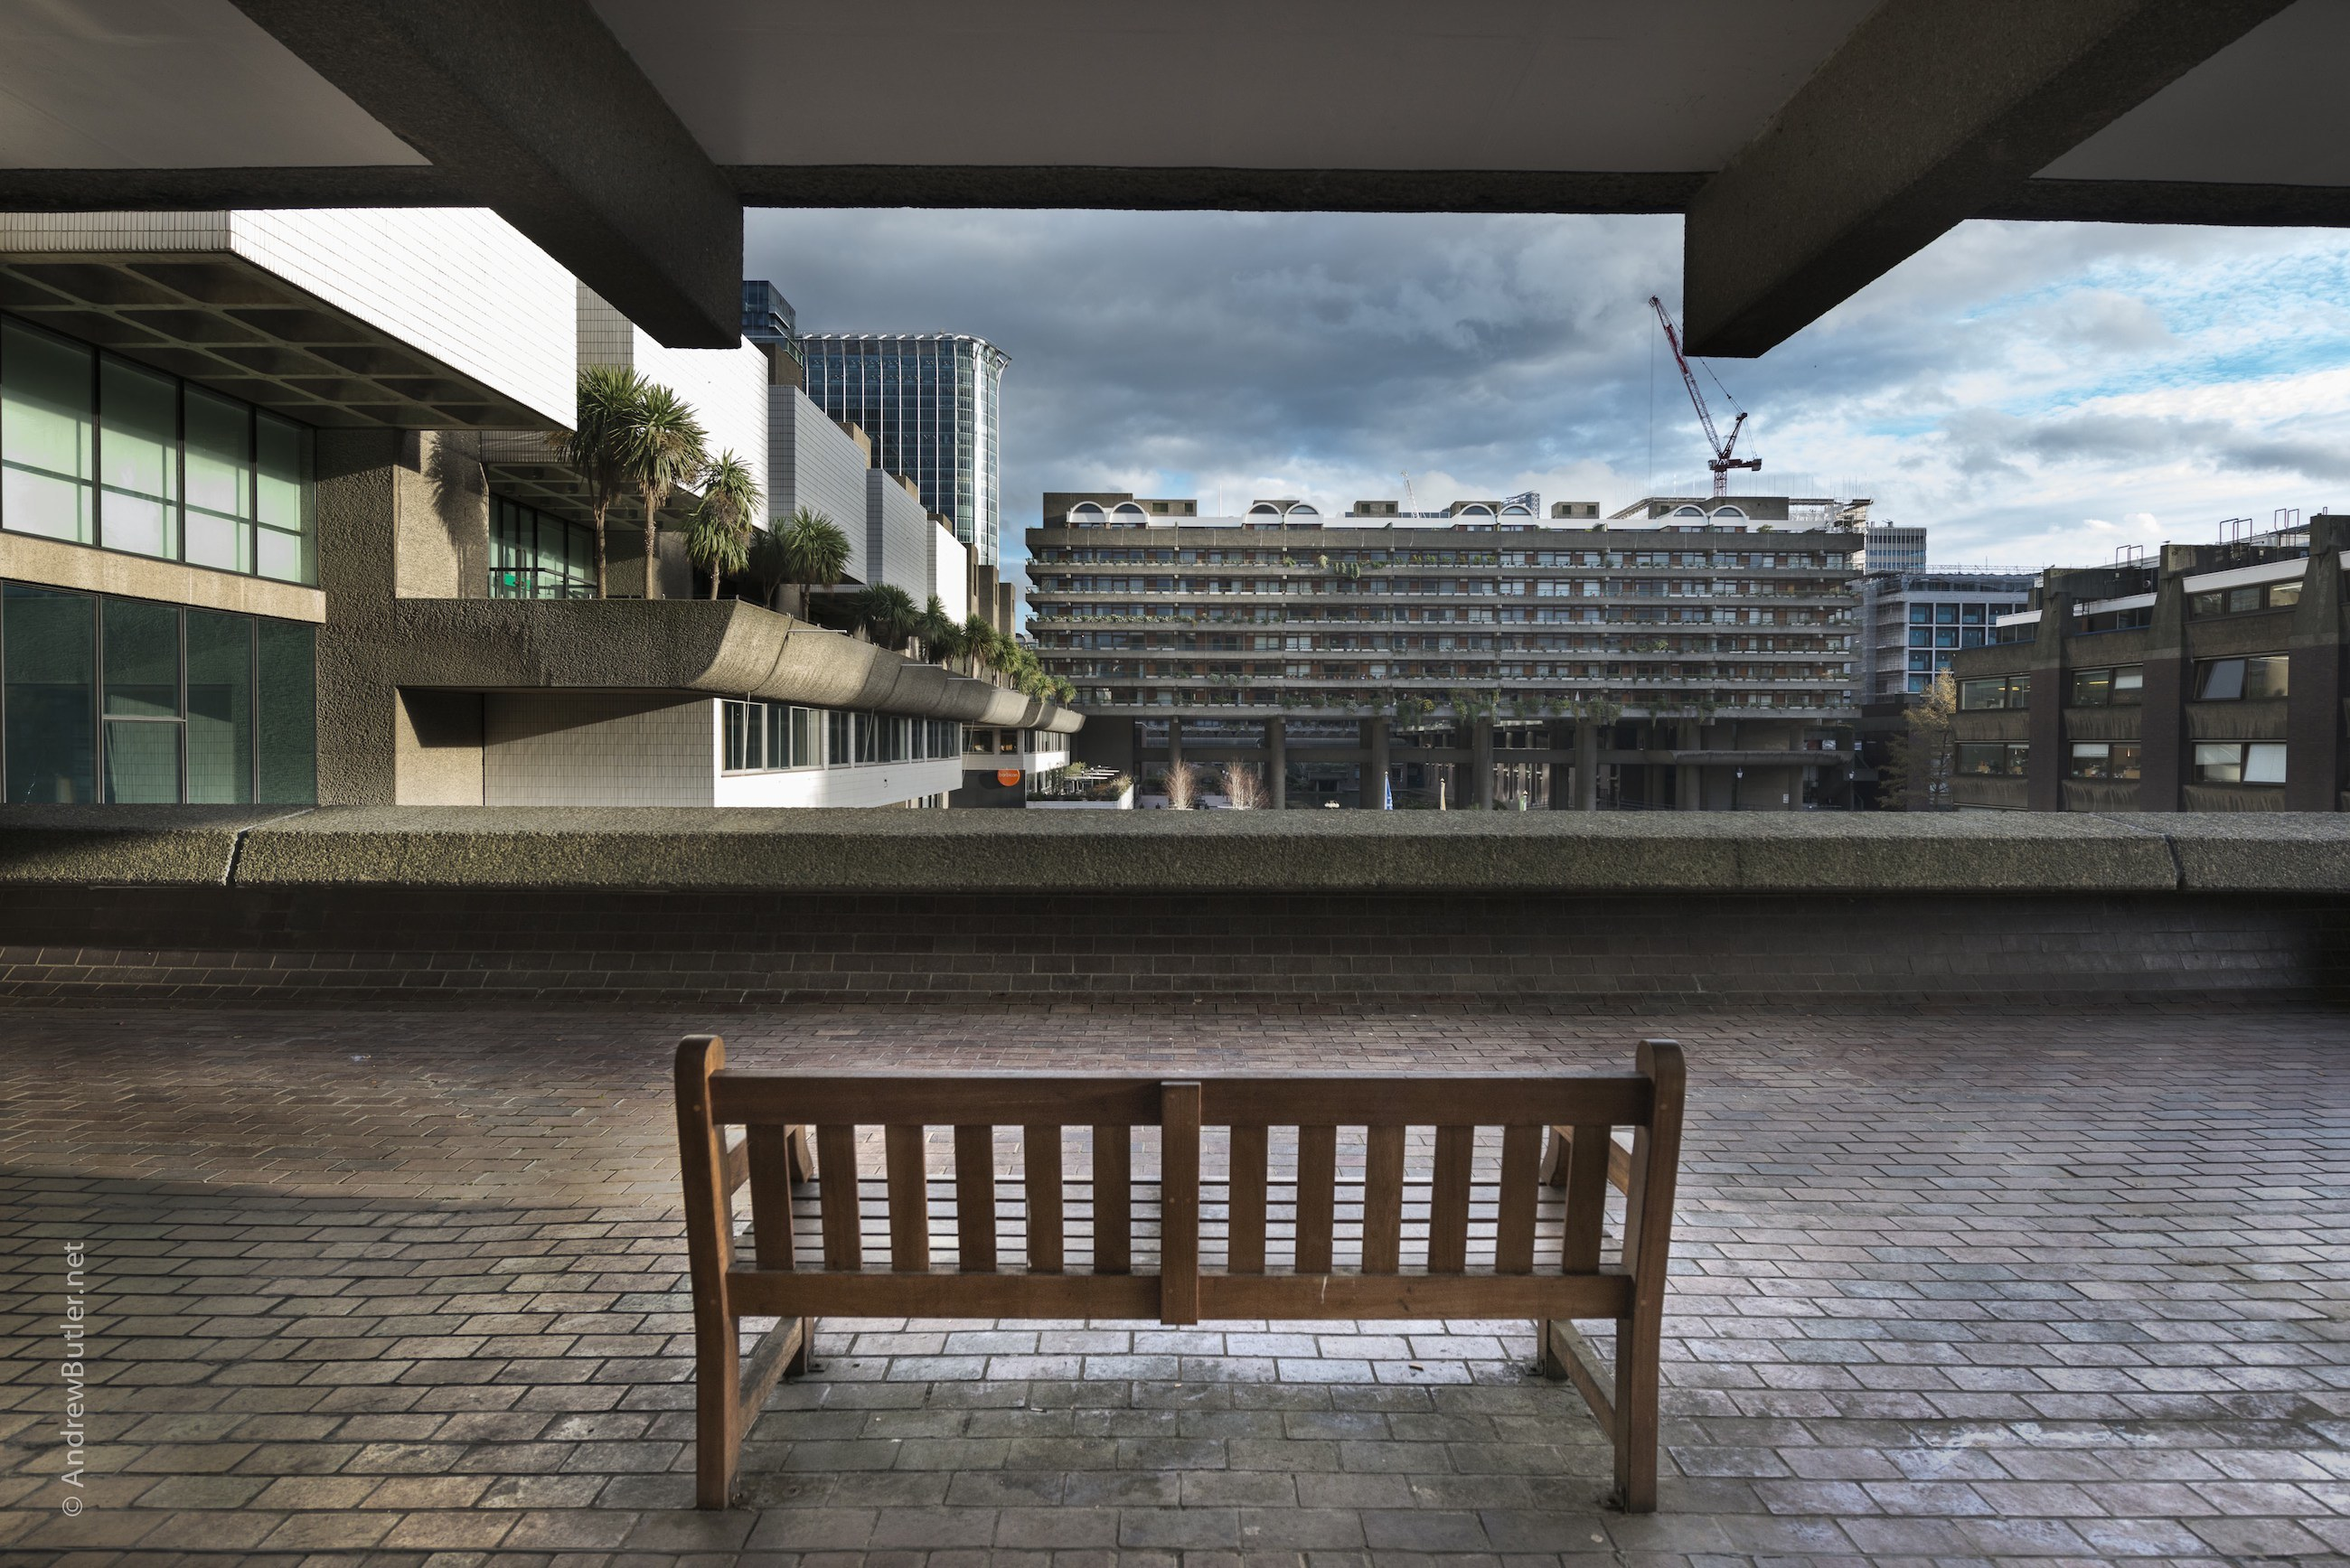 Architectural Photography, Barbican, City of London by Andrew Butler - Exeter, Devon